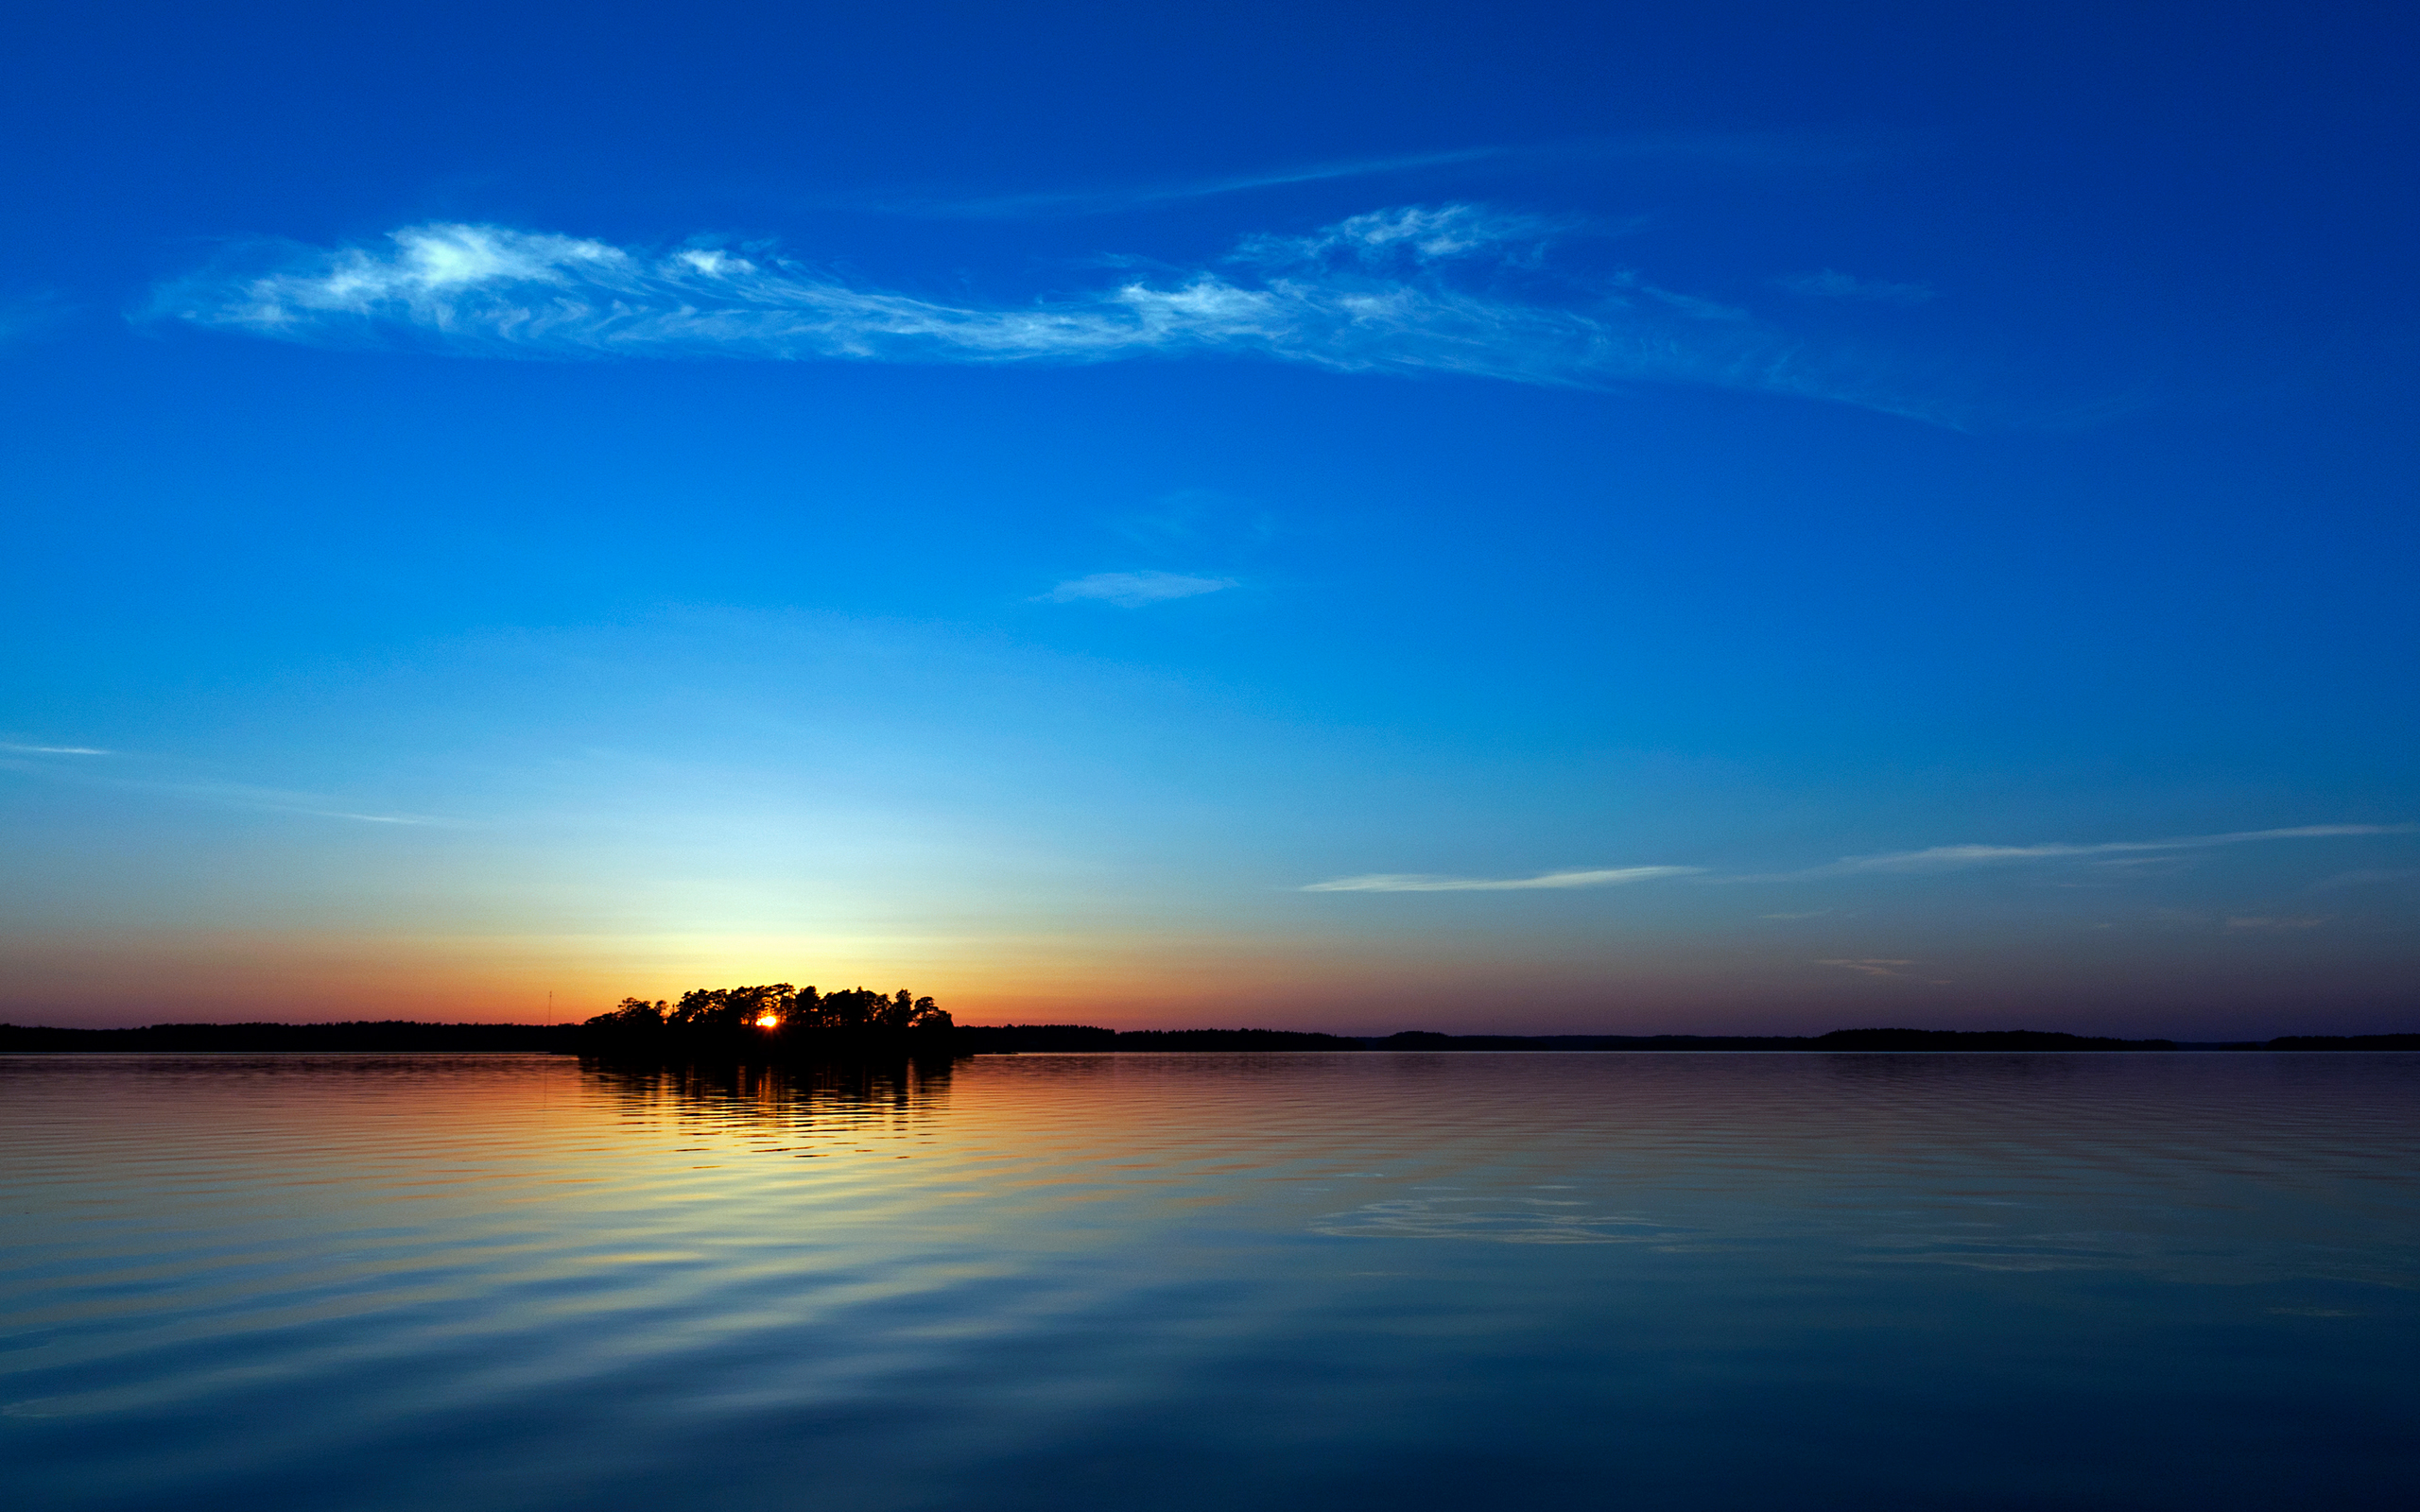 Blue Sunset Wallpapers | HD Wallpapers